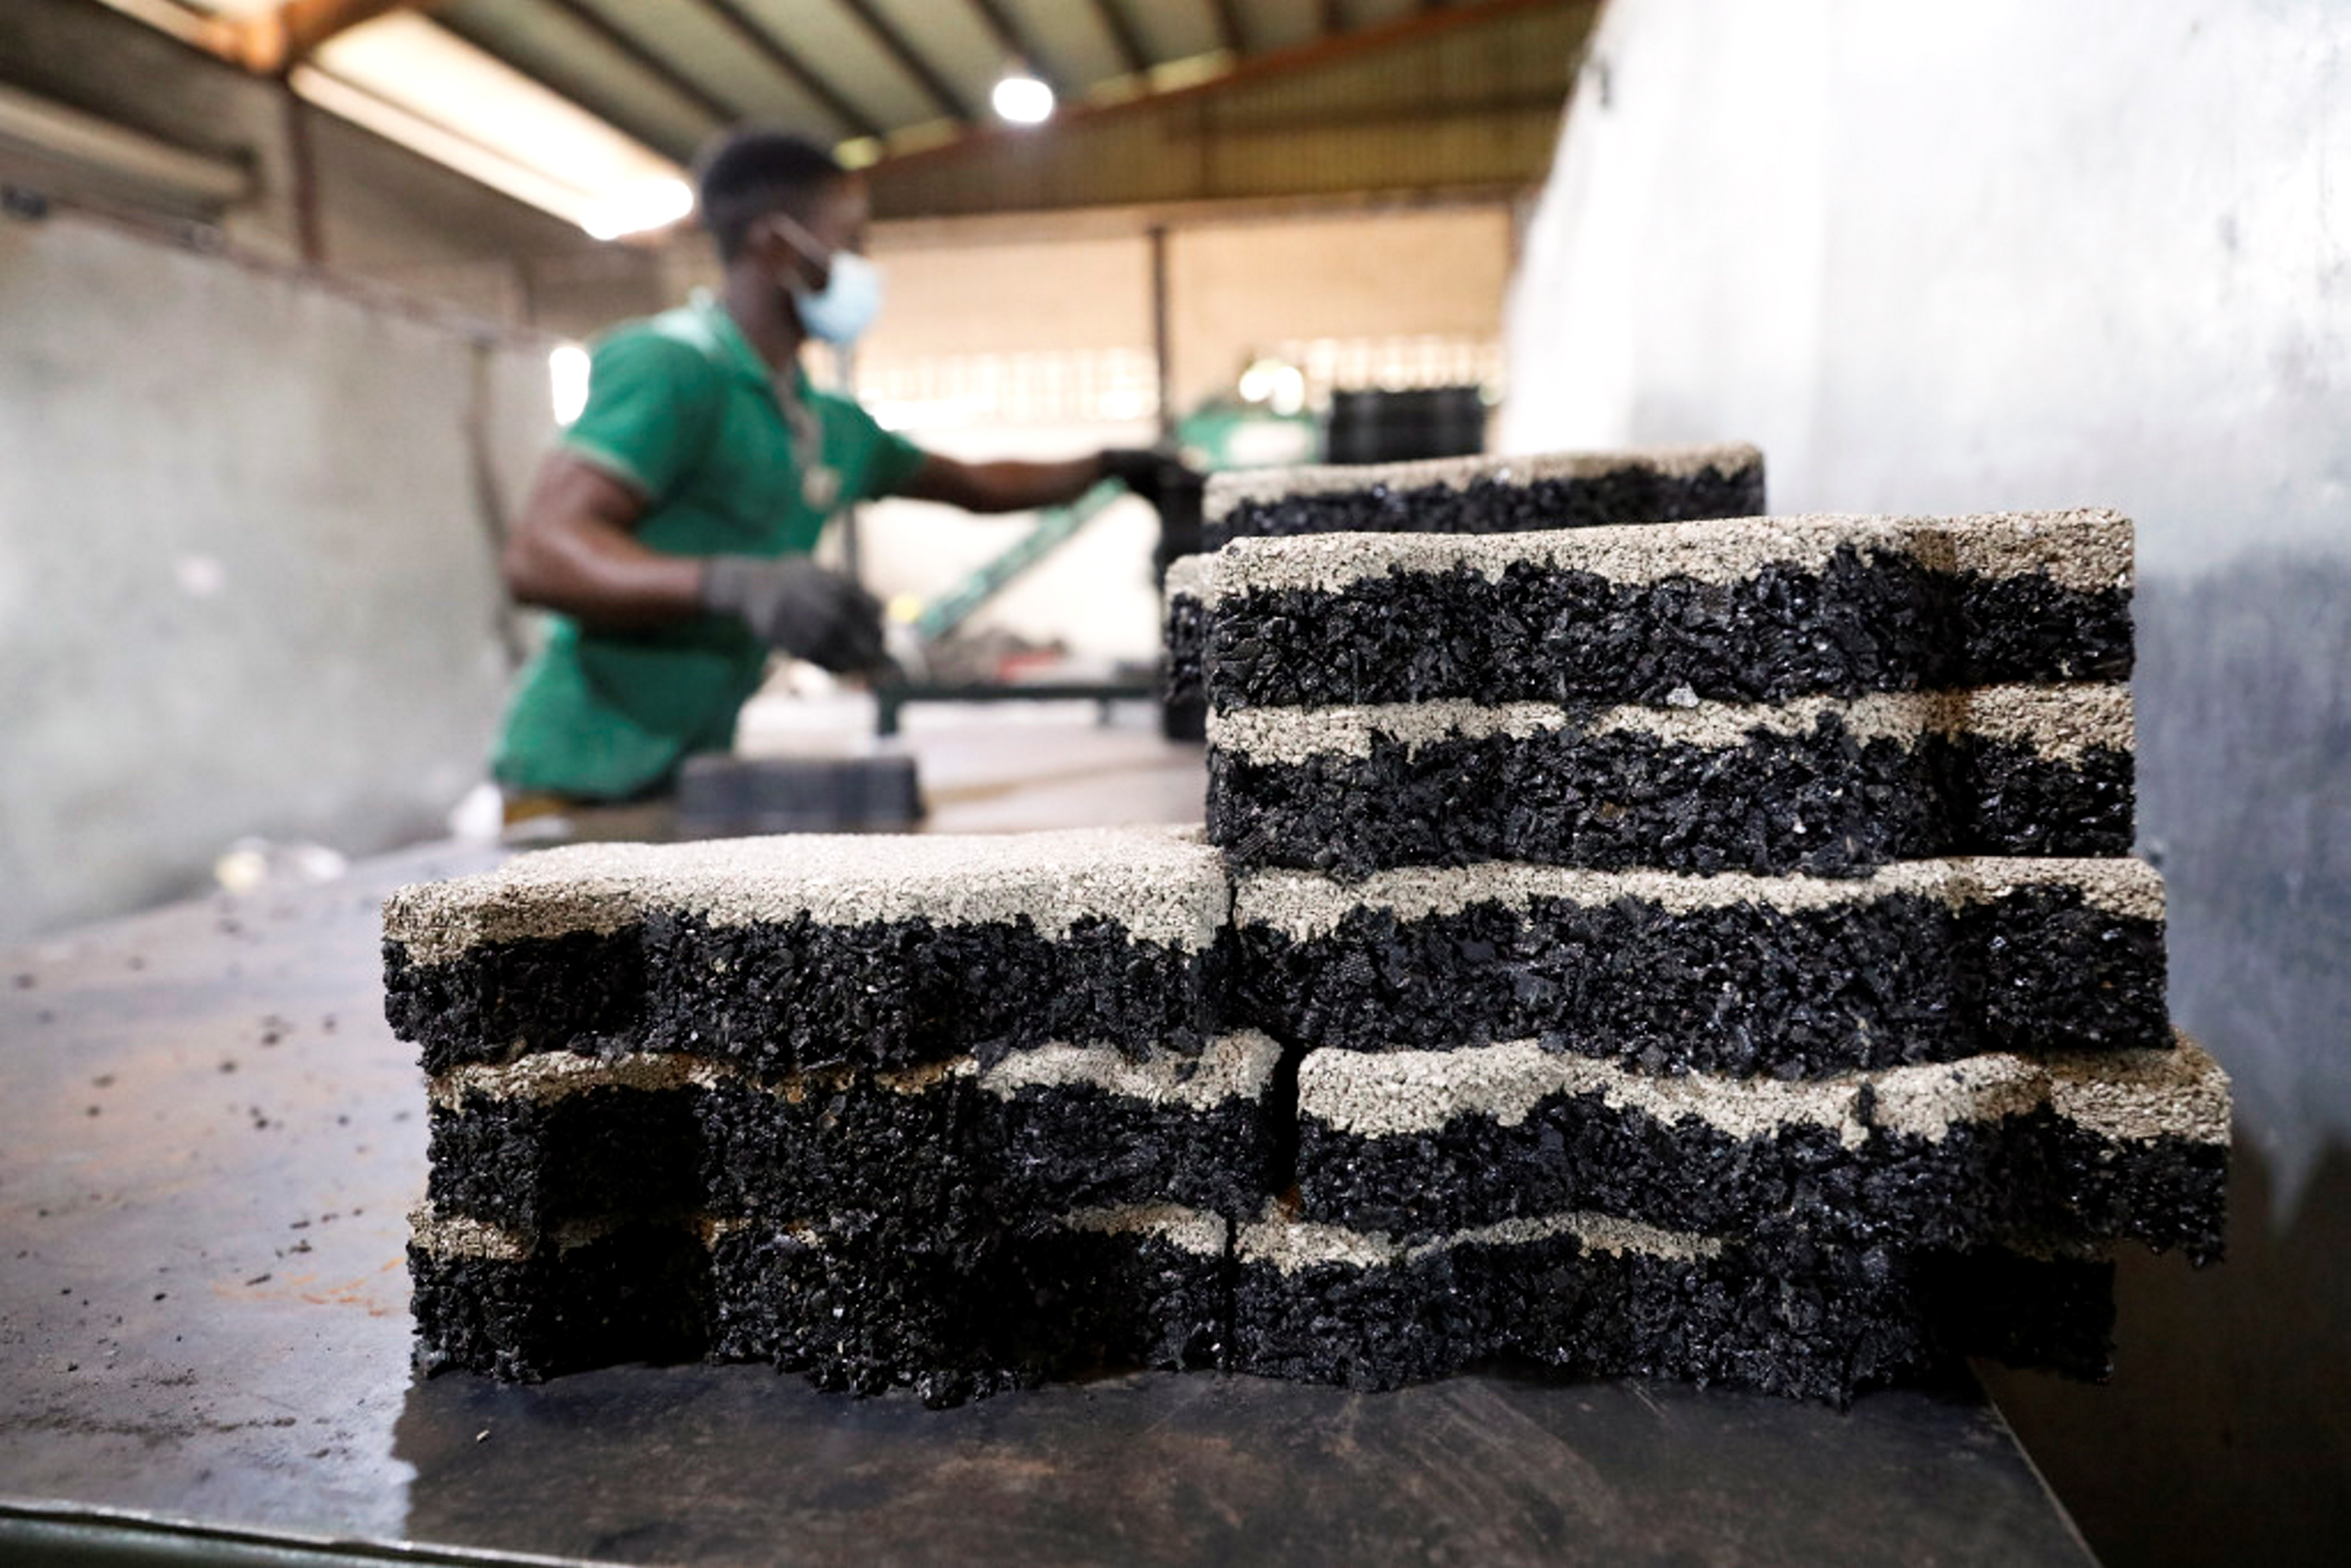 A man arranges newly moulded rubber interlocking tiles manufactured from recycled car tyres at the Freetown waste management recycle factory in Ibadan, Nigeria. REUTERS/Temilade Adelaja